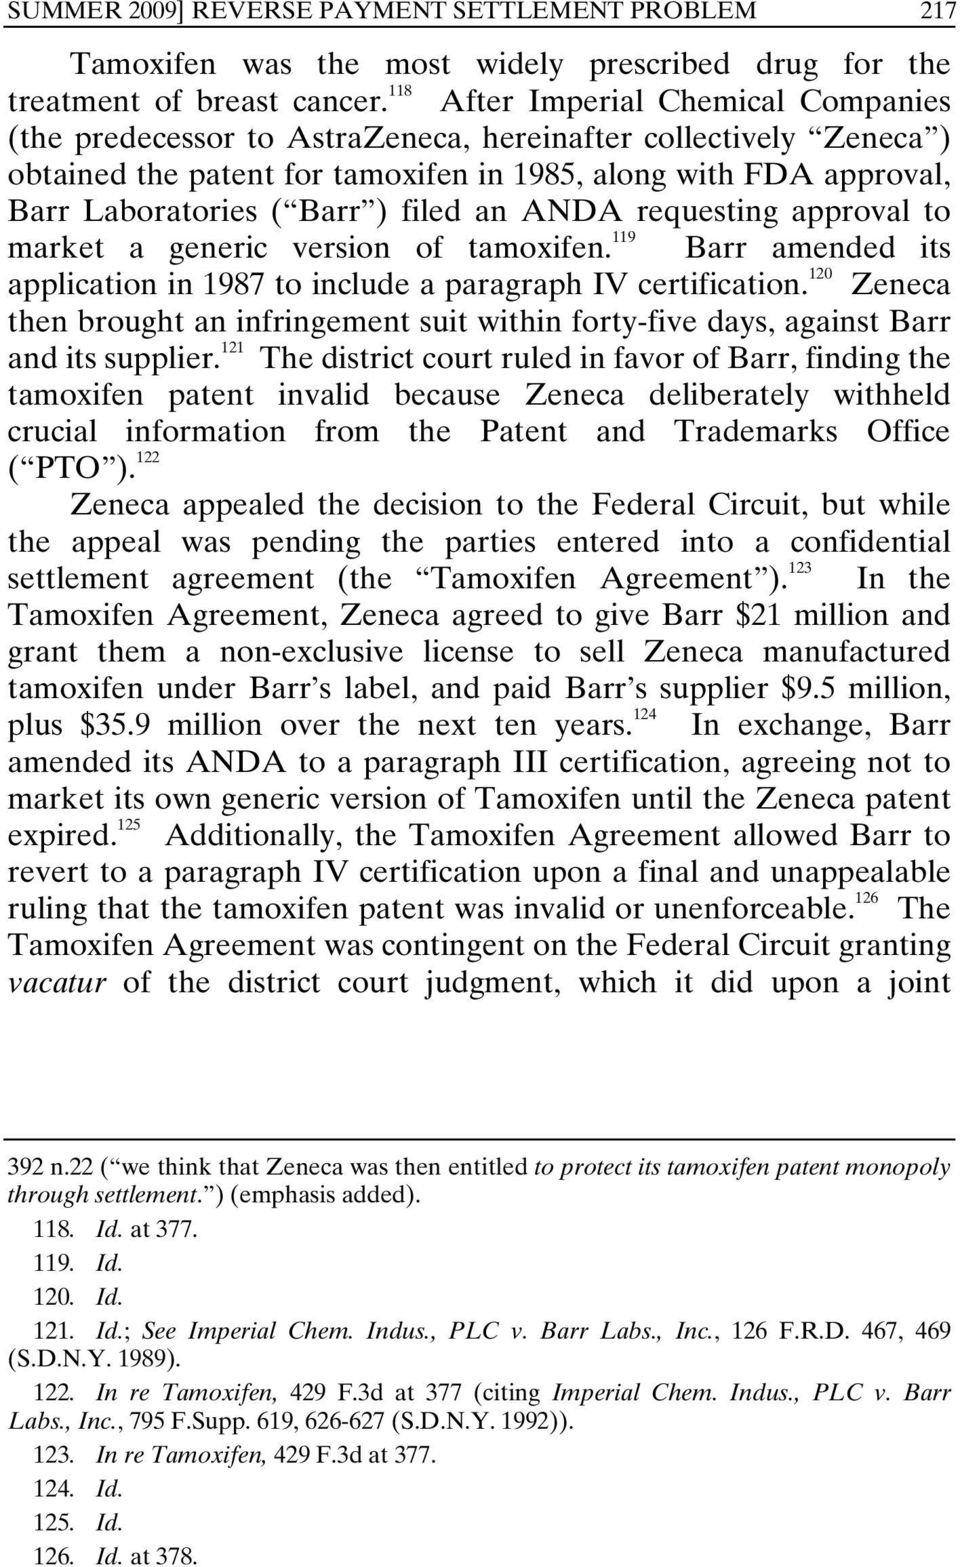 filed an ANDA requesting approval to market a generic version of tamoxifen. 119 Barr amended its application in 1987 to include a paragraph IV certification.